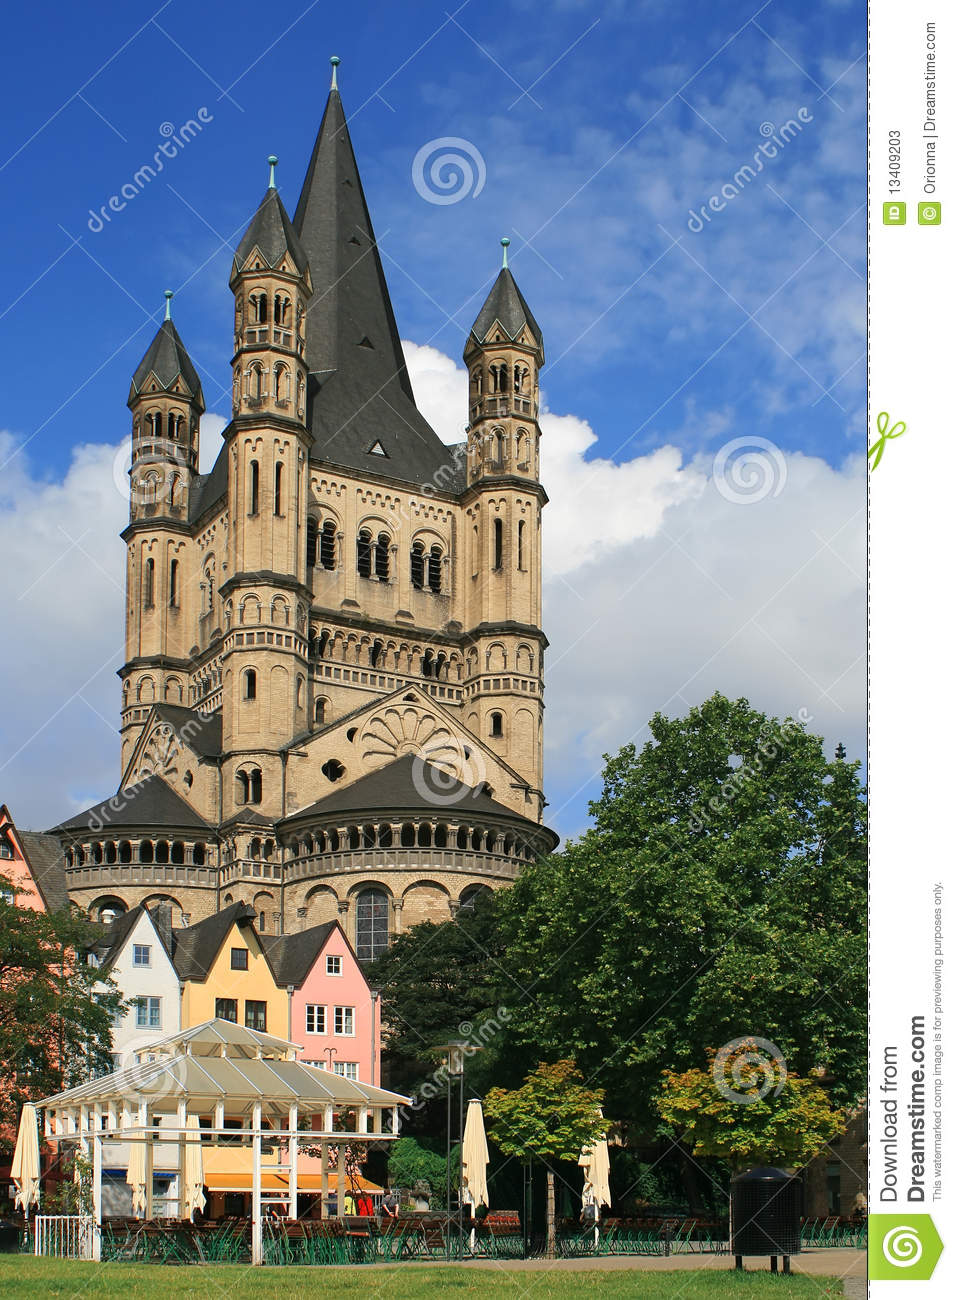 A Castle In Frankfurt Germany Stock Image  Image 13409203